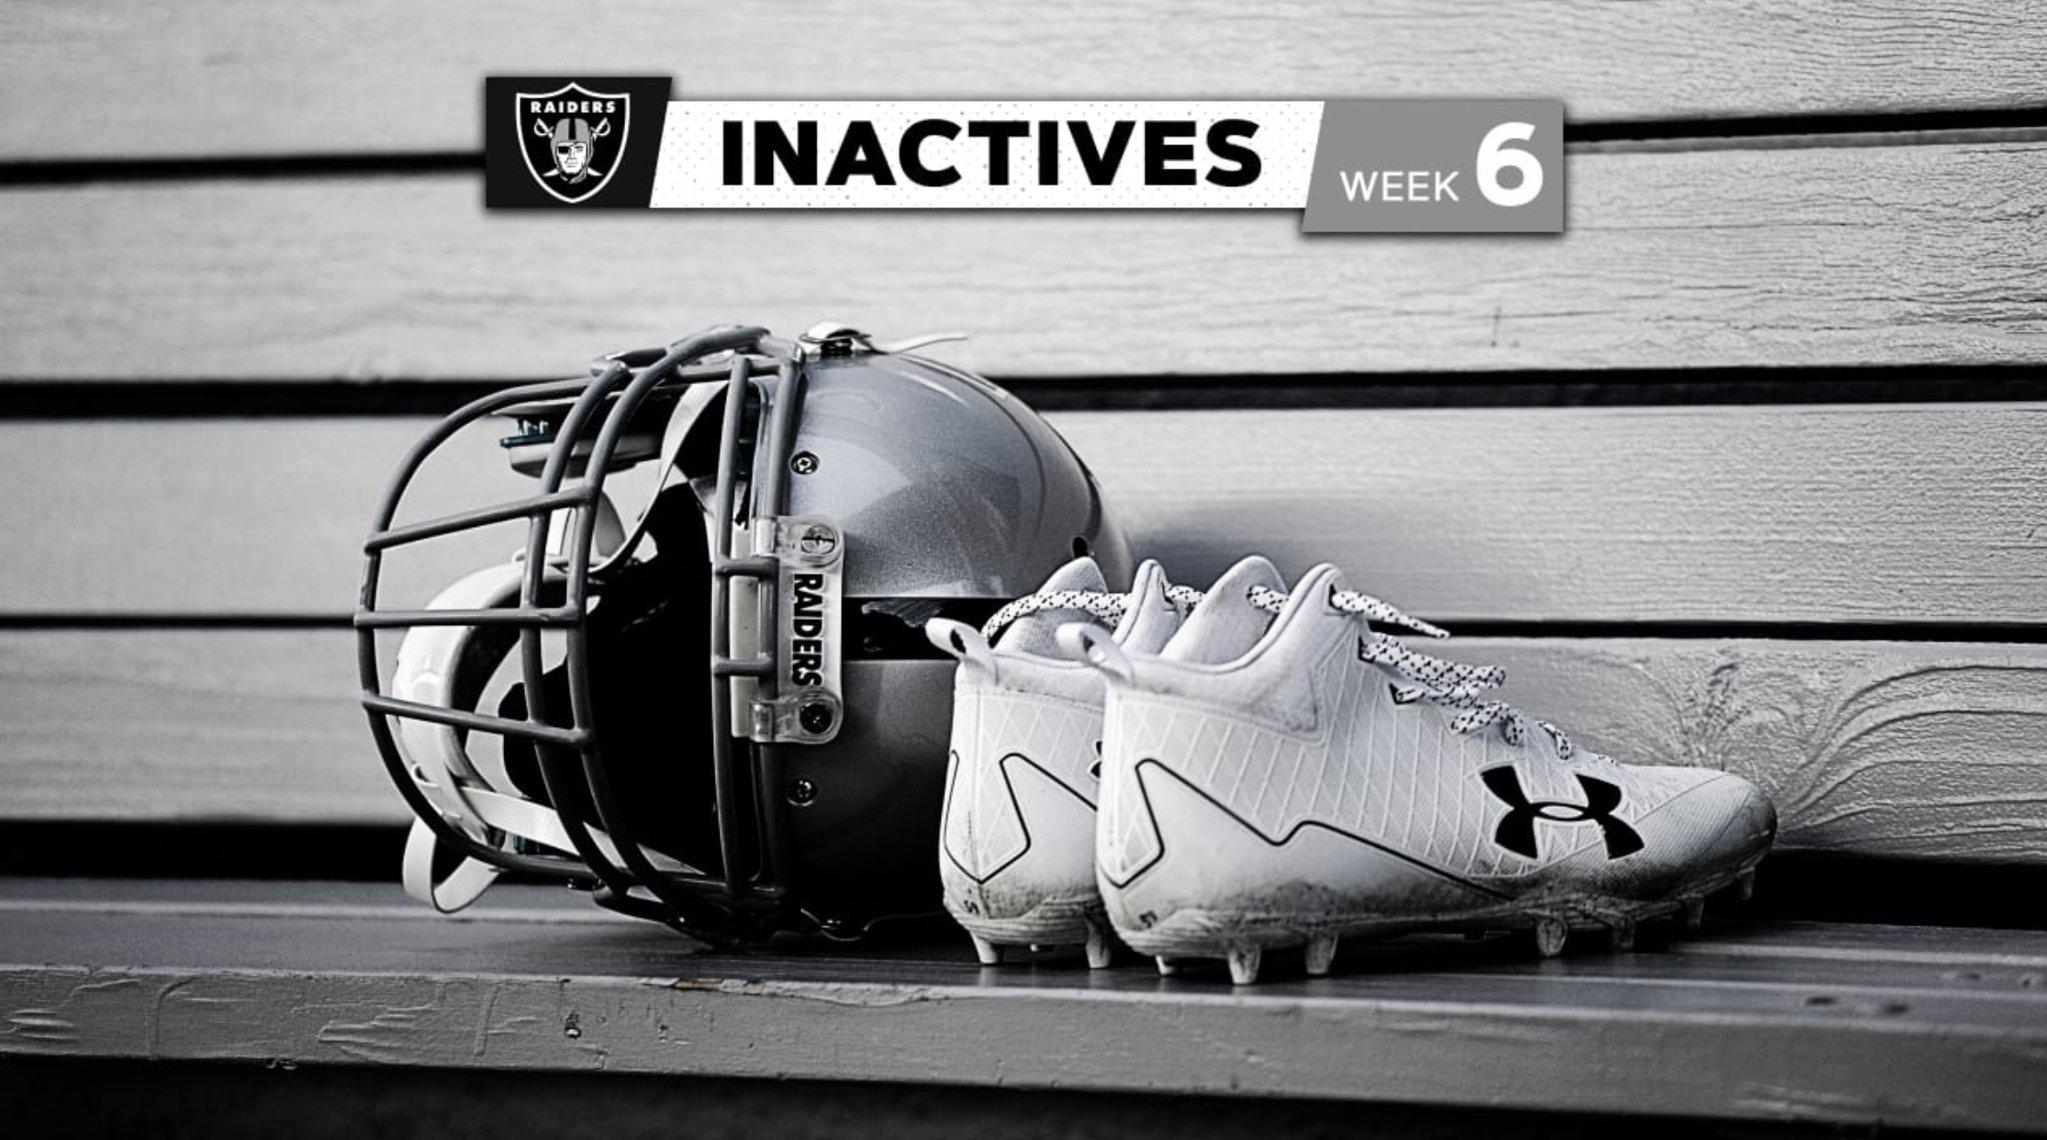 The following players are inactive for #SEAvsOAK: https://t.co/Mo9bOk2lGA https://t.co/iduEUPYykE